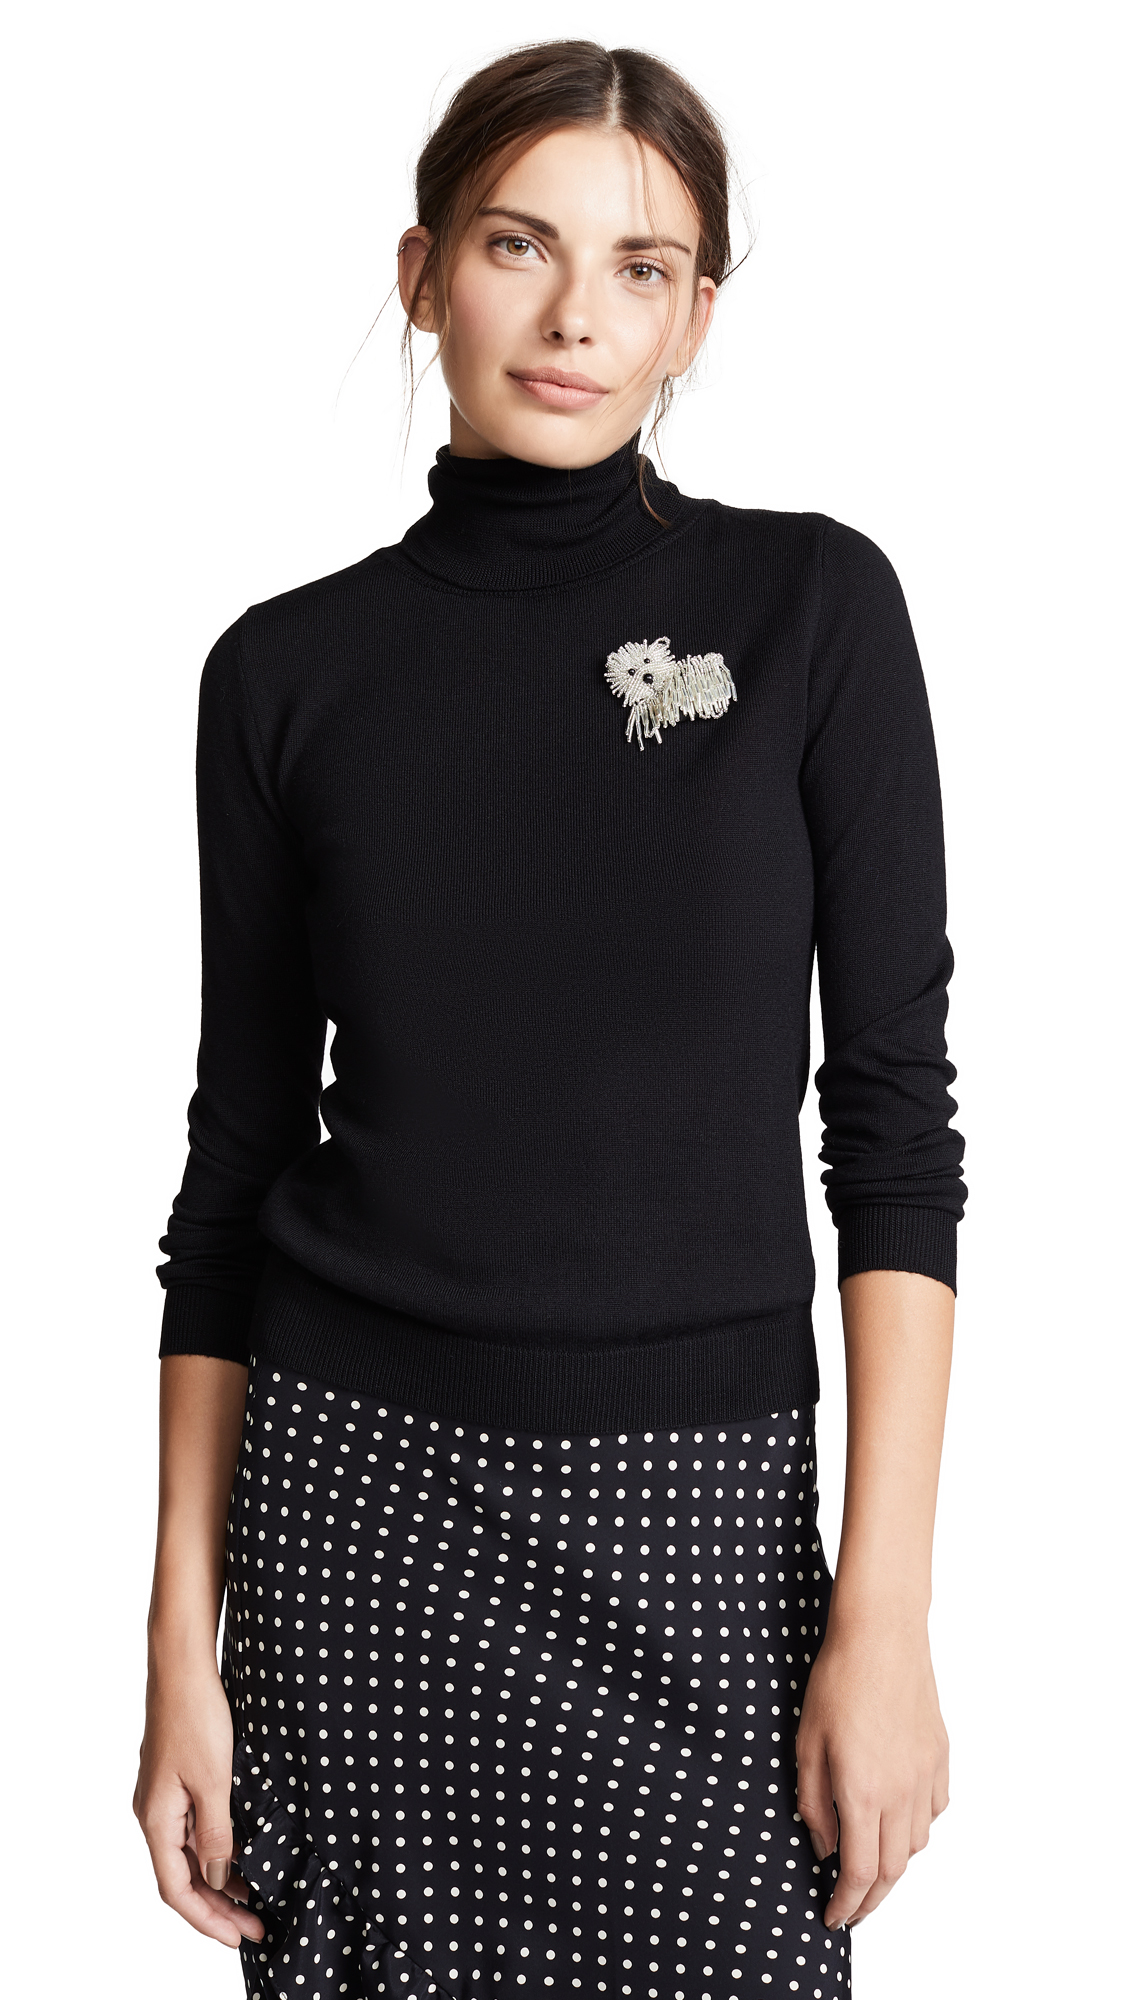 BOUTIQUE MOSCHINO Embroidered Sweater, Black